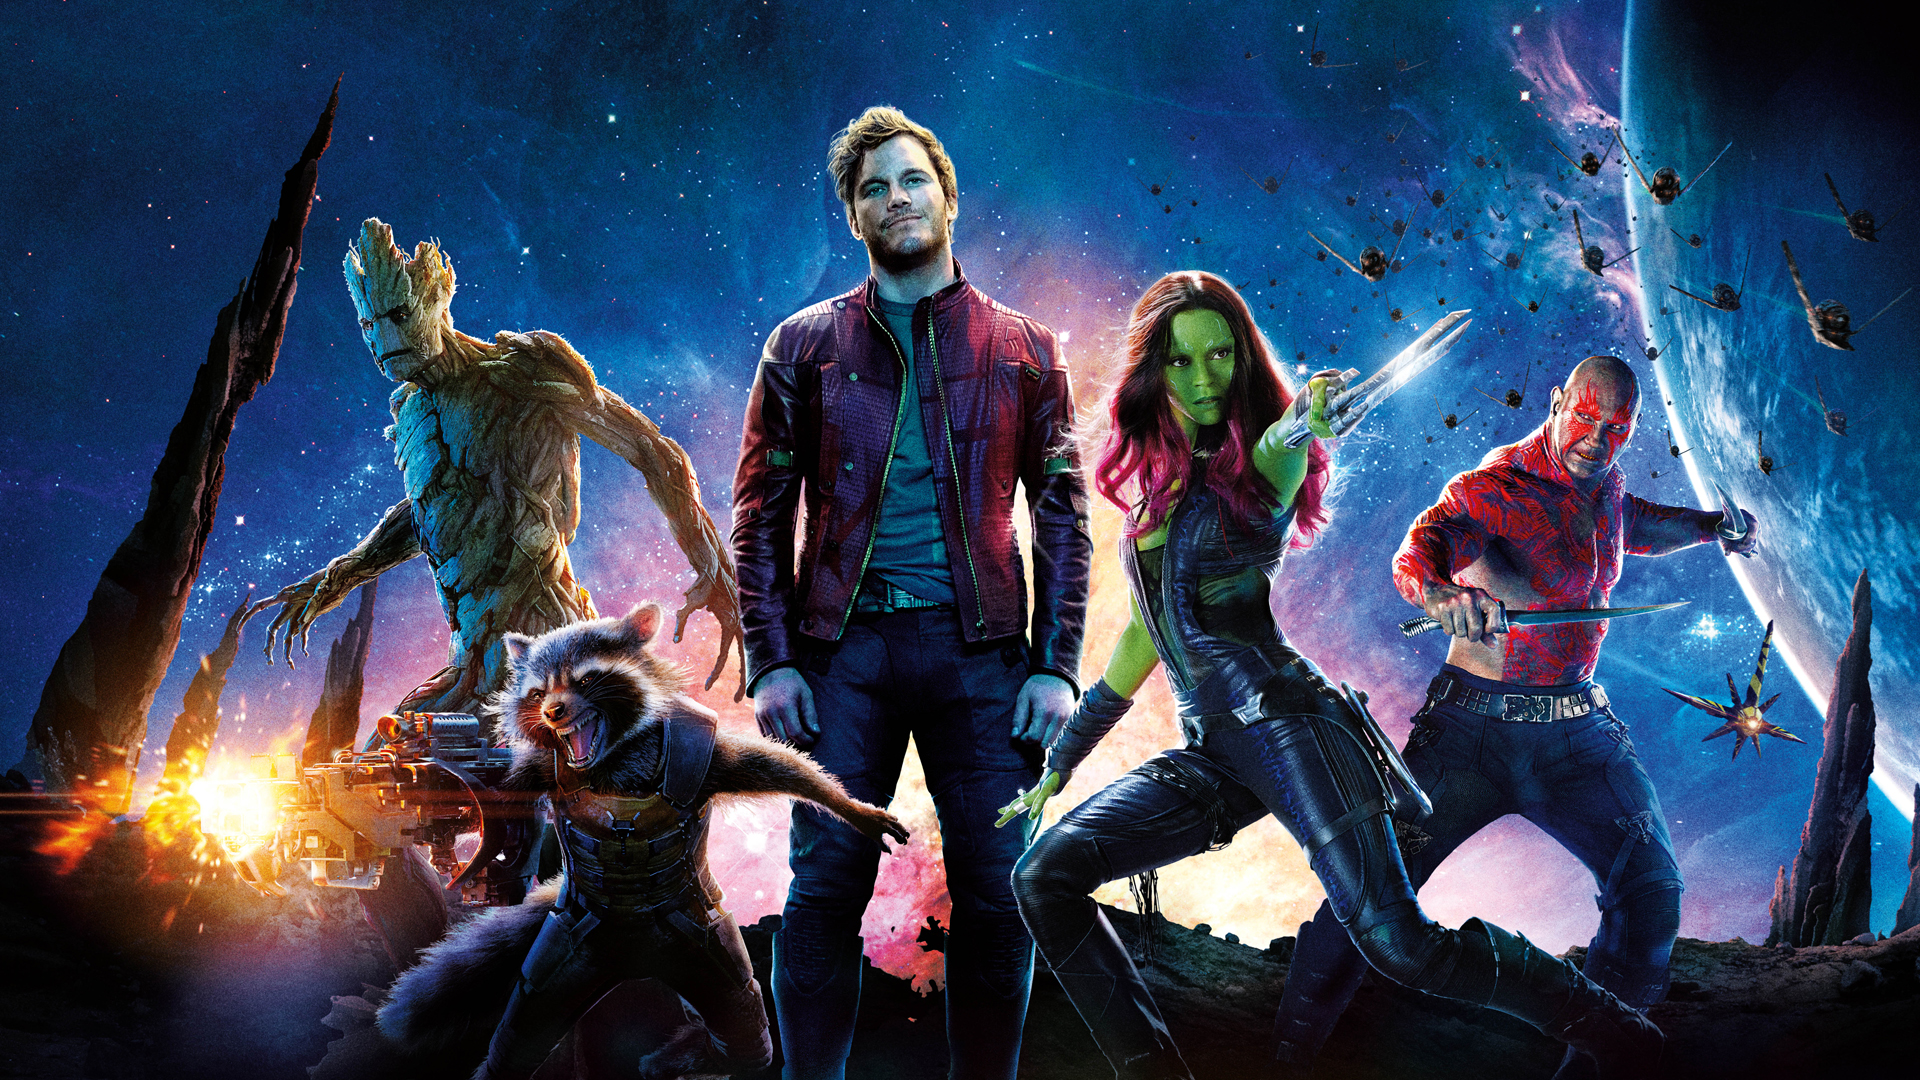 Guardians of the Galaxy wallpaper 5